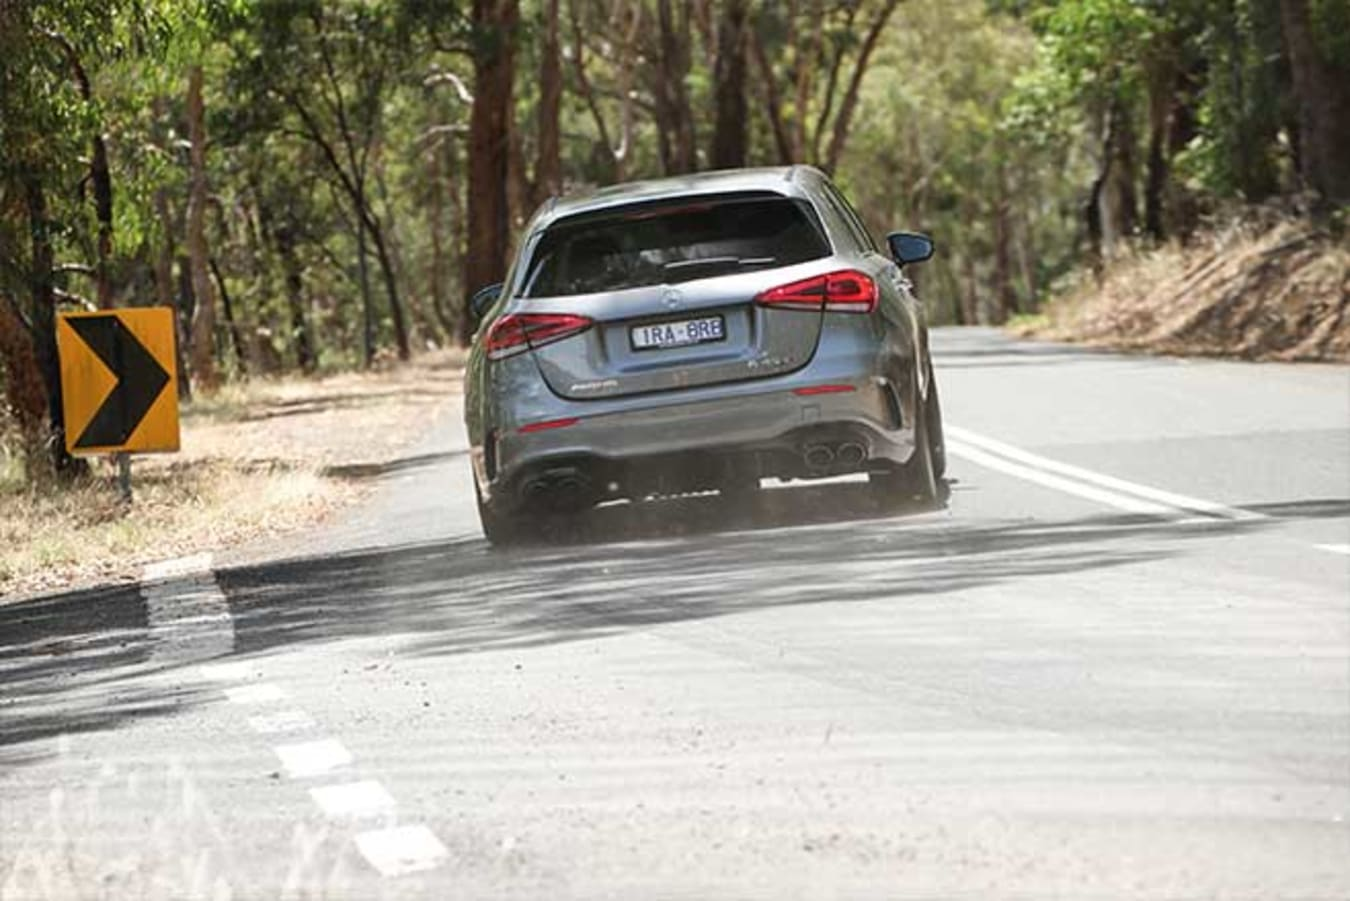 The latest A45 AMG is a much more playful handler